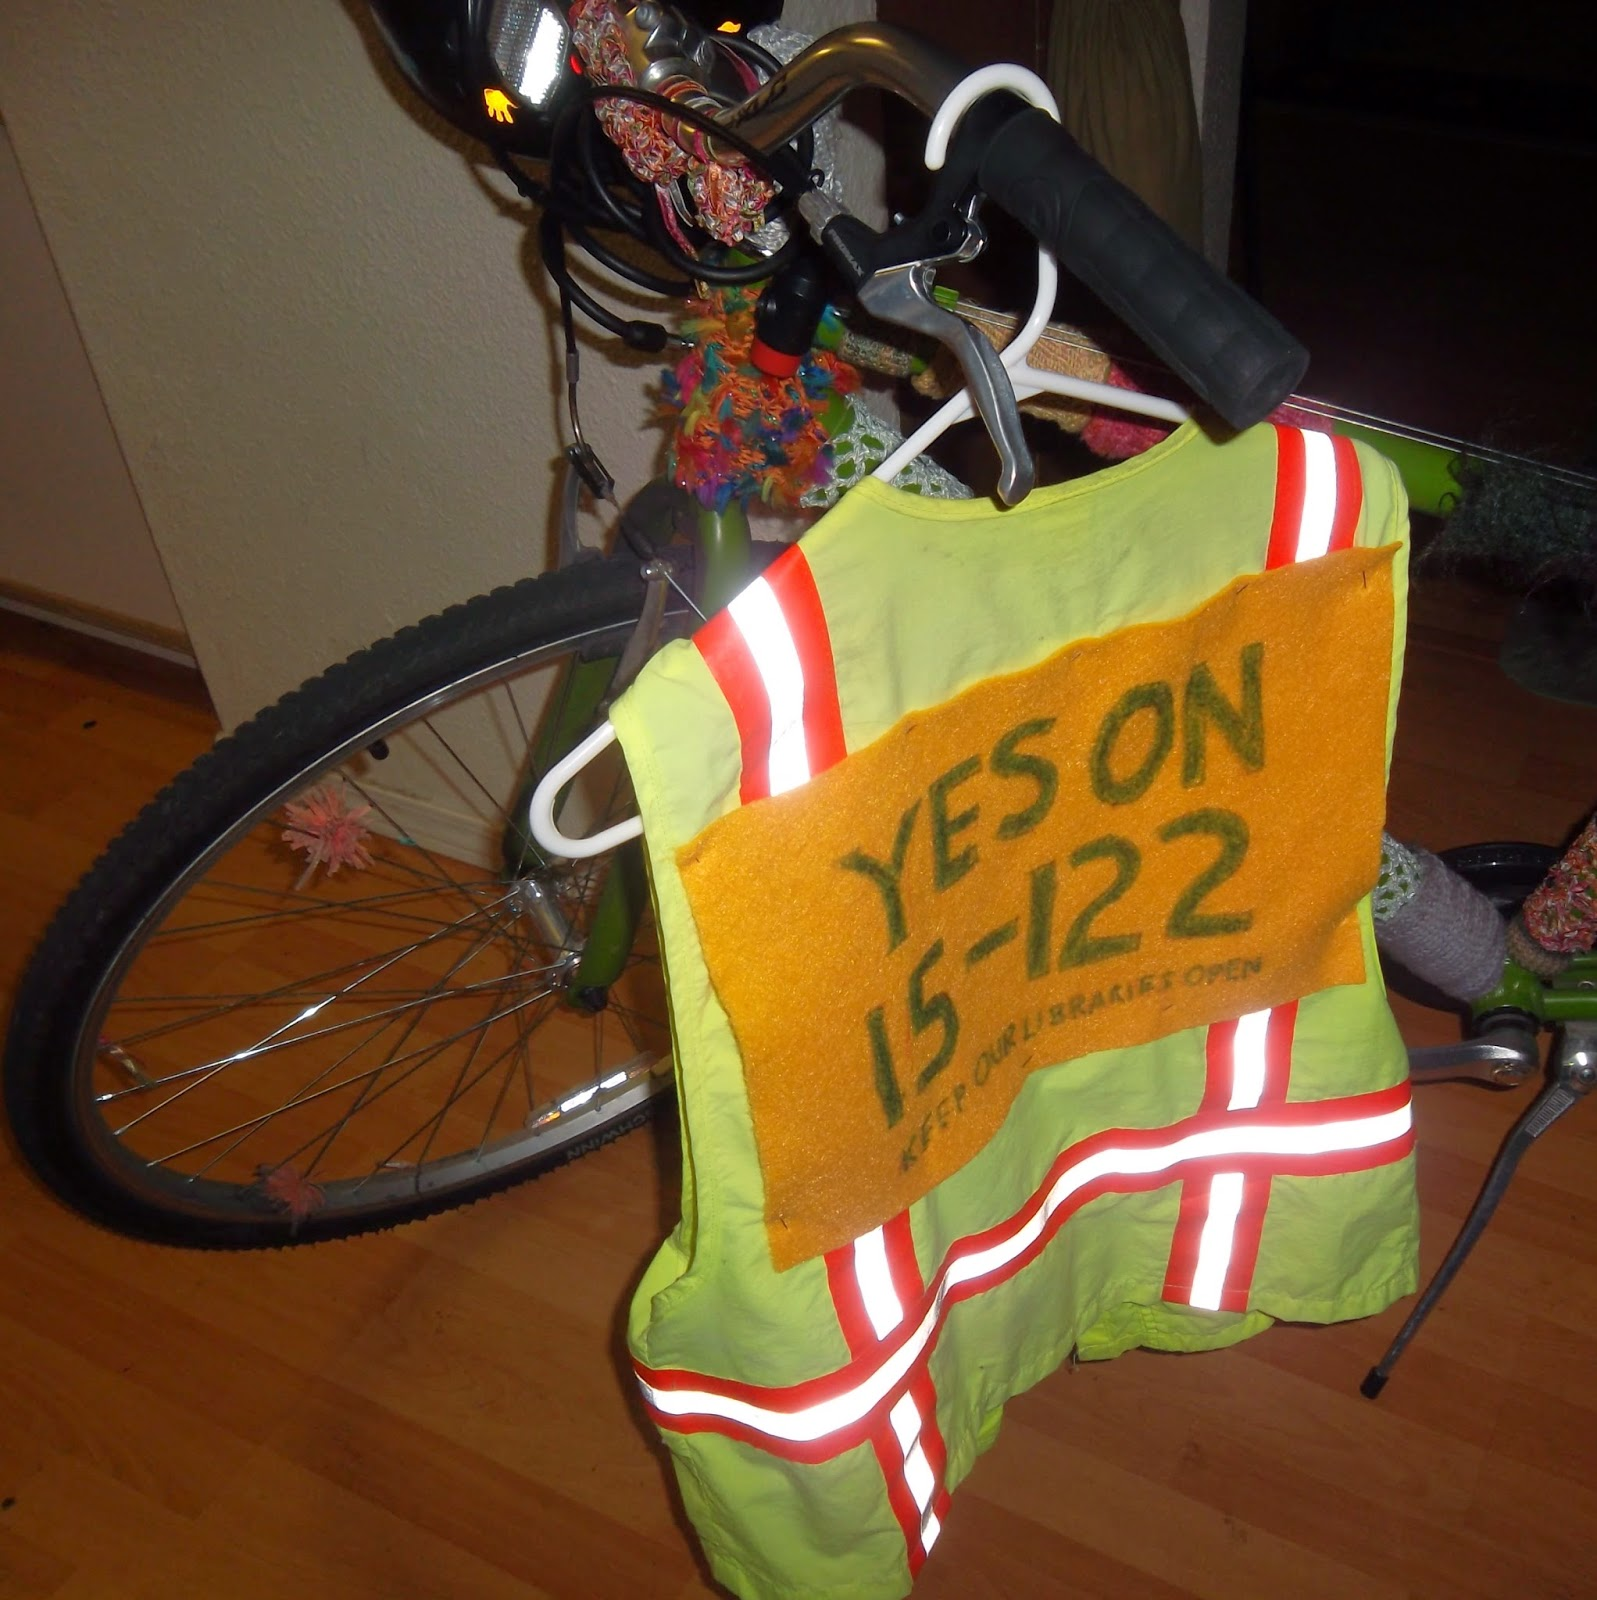 "Reflective vest on hangar, hanging from the handlebar of my bicycle. A sign pinned to the back of the vest reads ""YES ON 15-122"" in large green letters against a gold background. Smaller letters, also green, along the bottom read ""KEEP OUR LIBRARIES OPEN."""